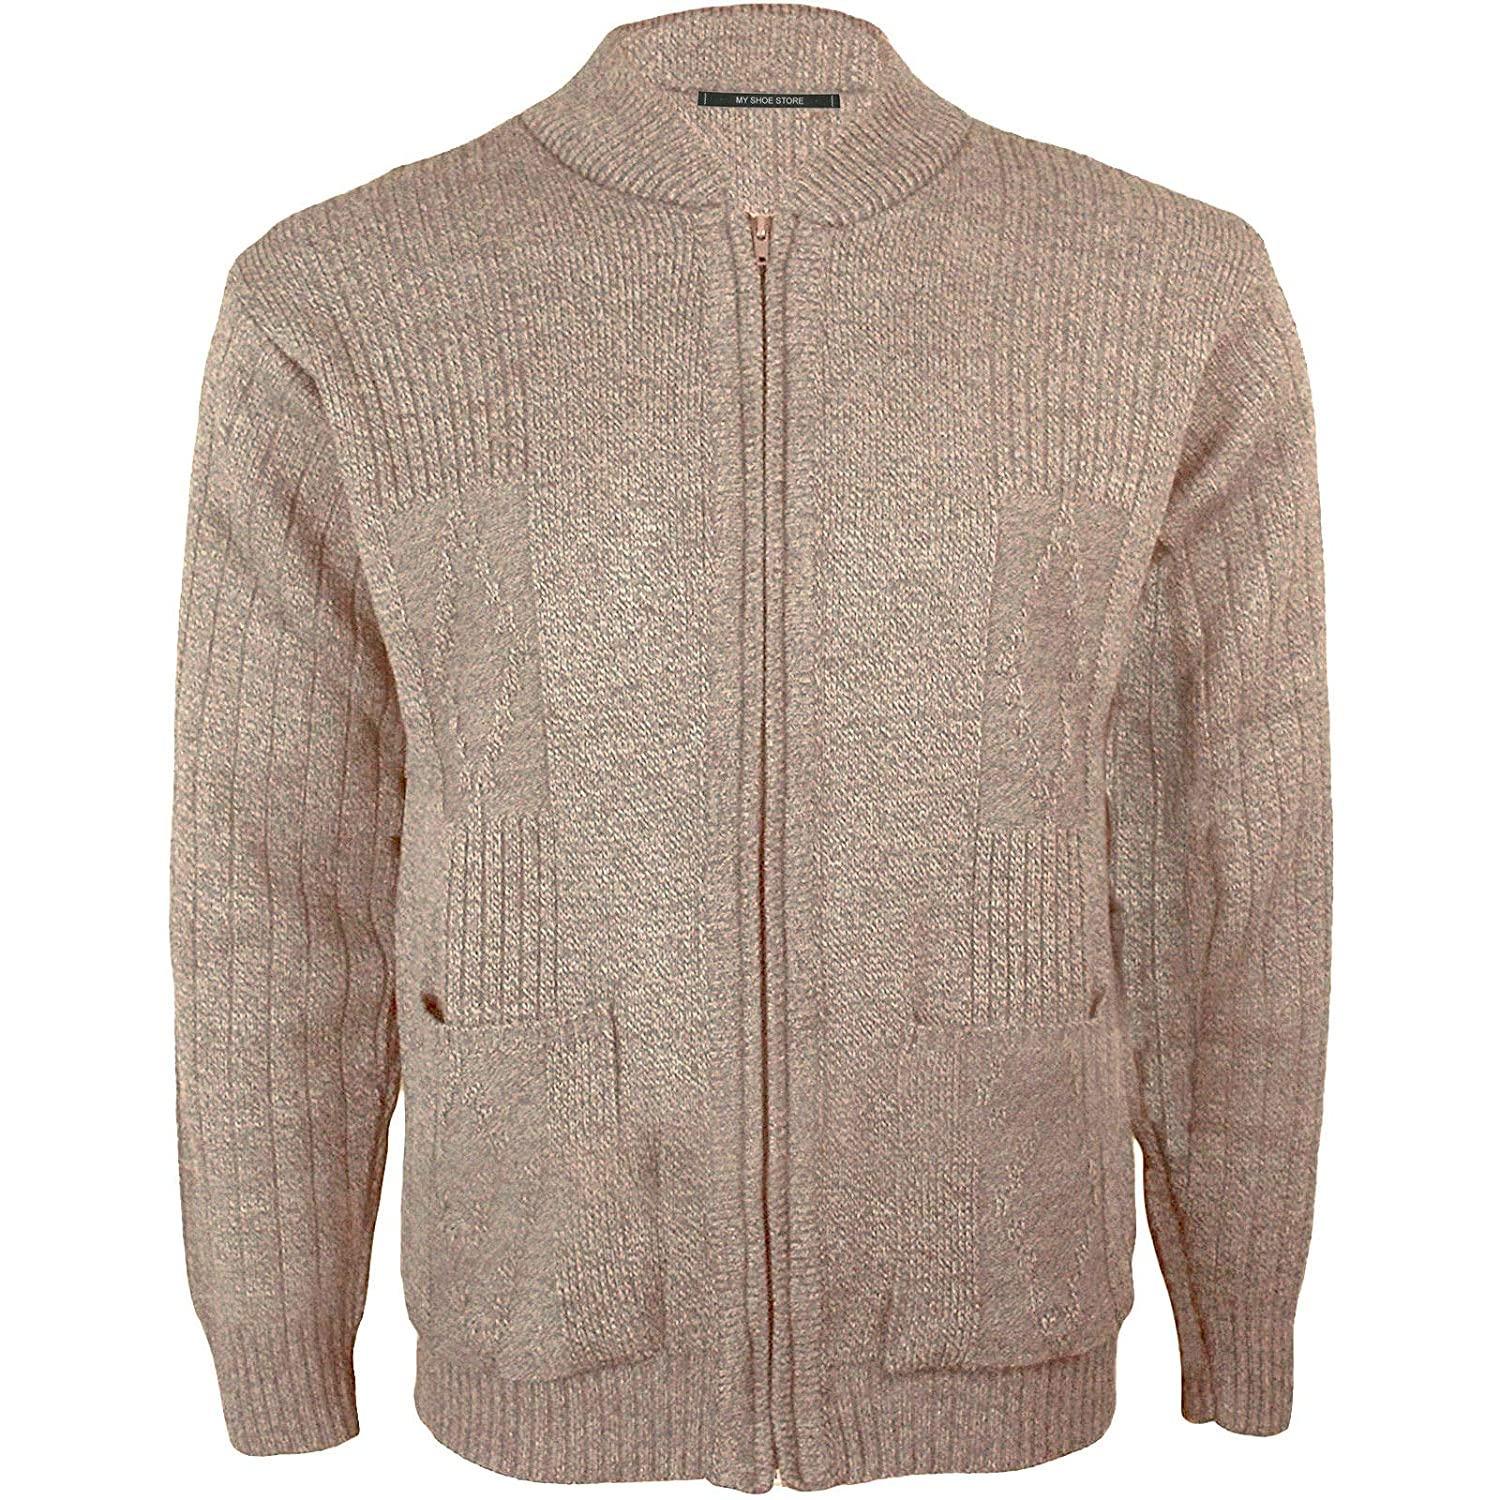 Mens Vintage Classic Style Zip Up Plain Knitted Grandad Cardigan Long Sleeve Knitwear Jumper with Pockets Jumper UK S-2XL